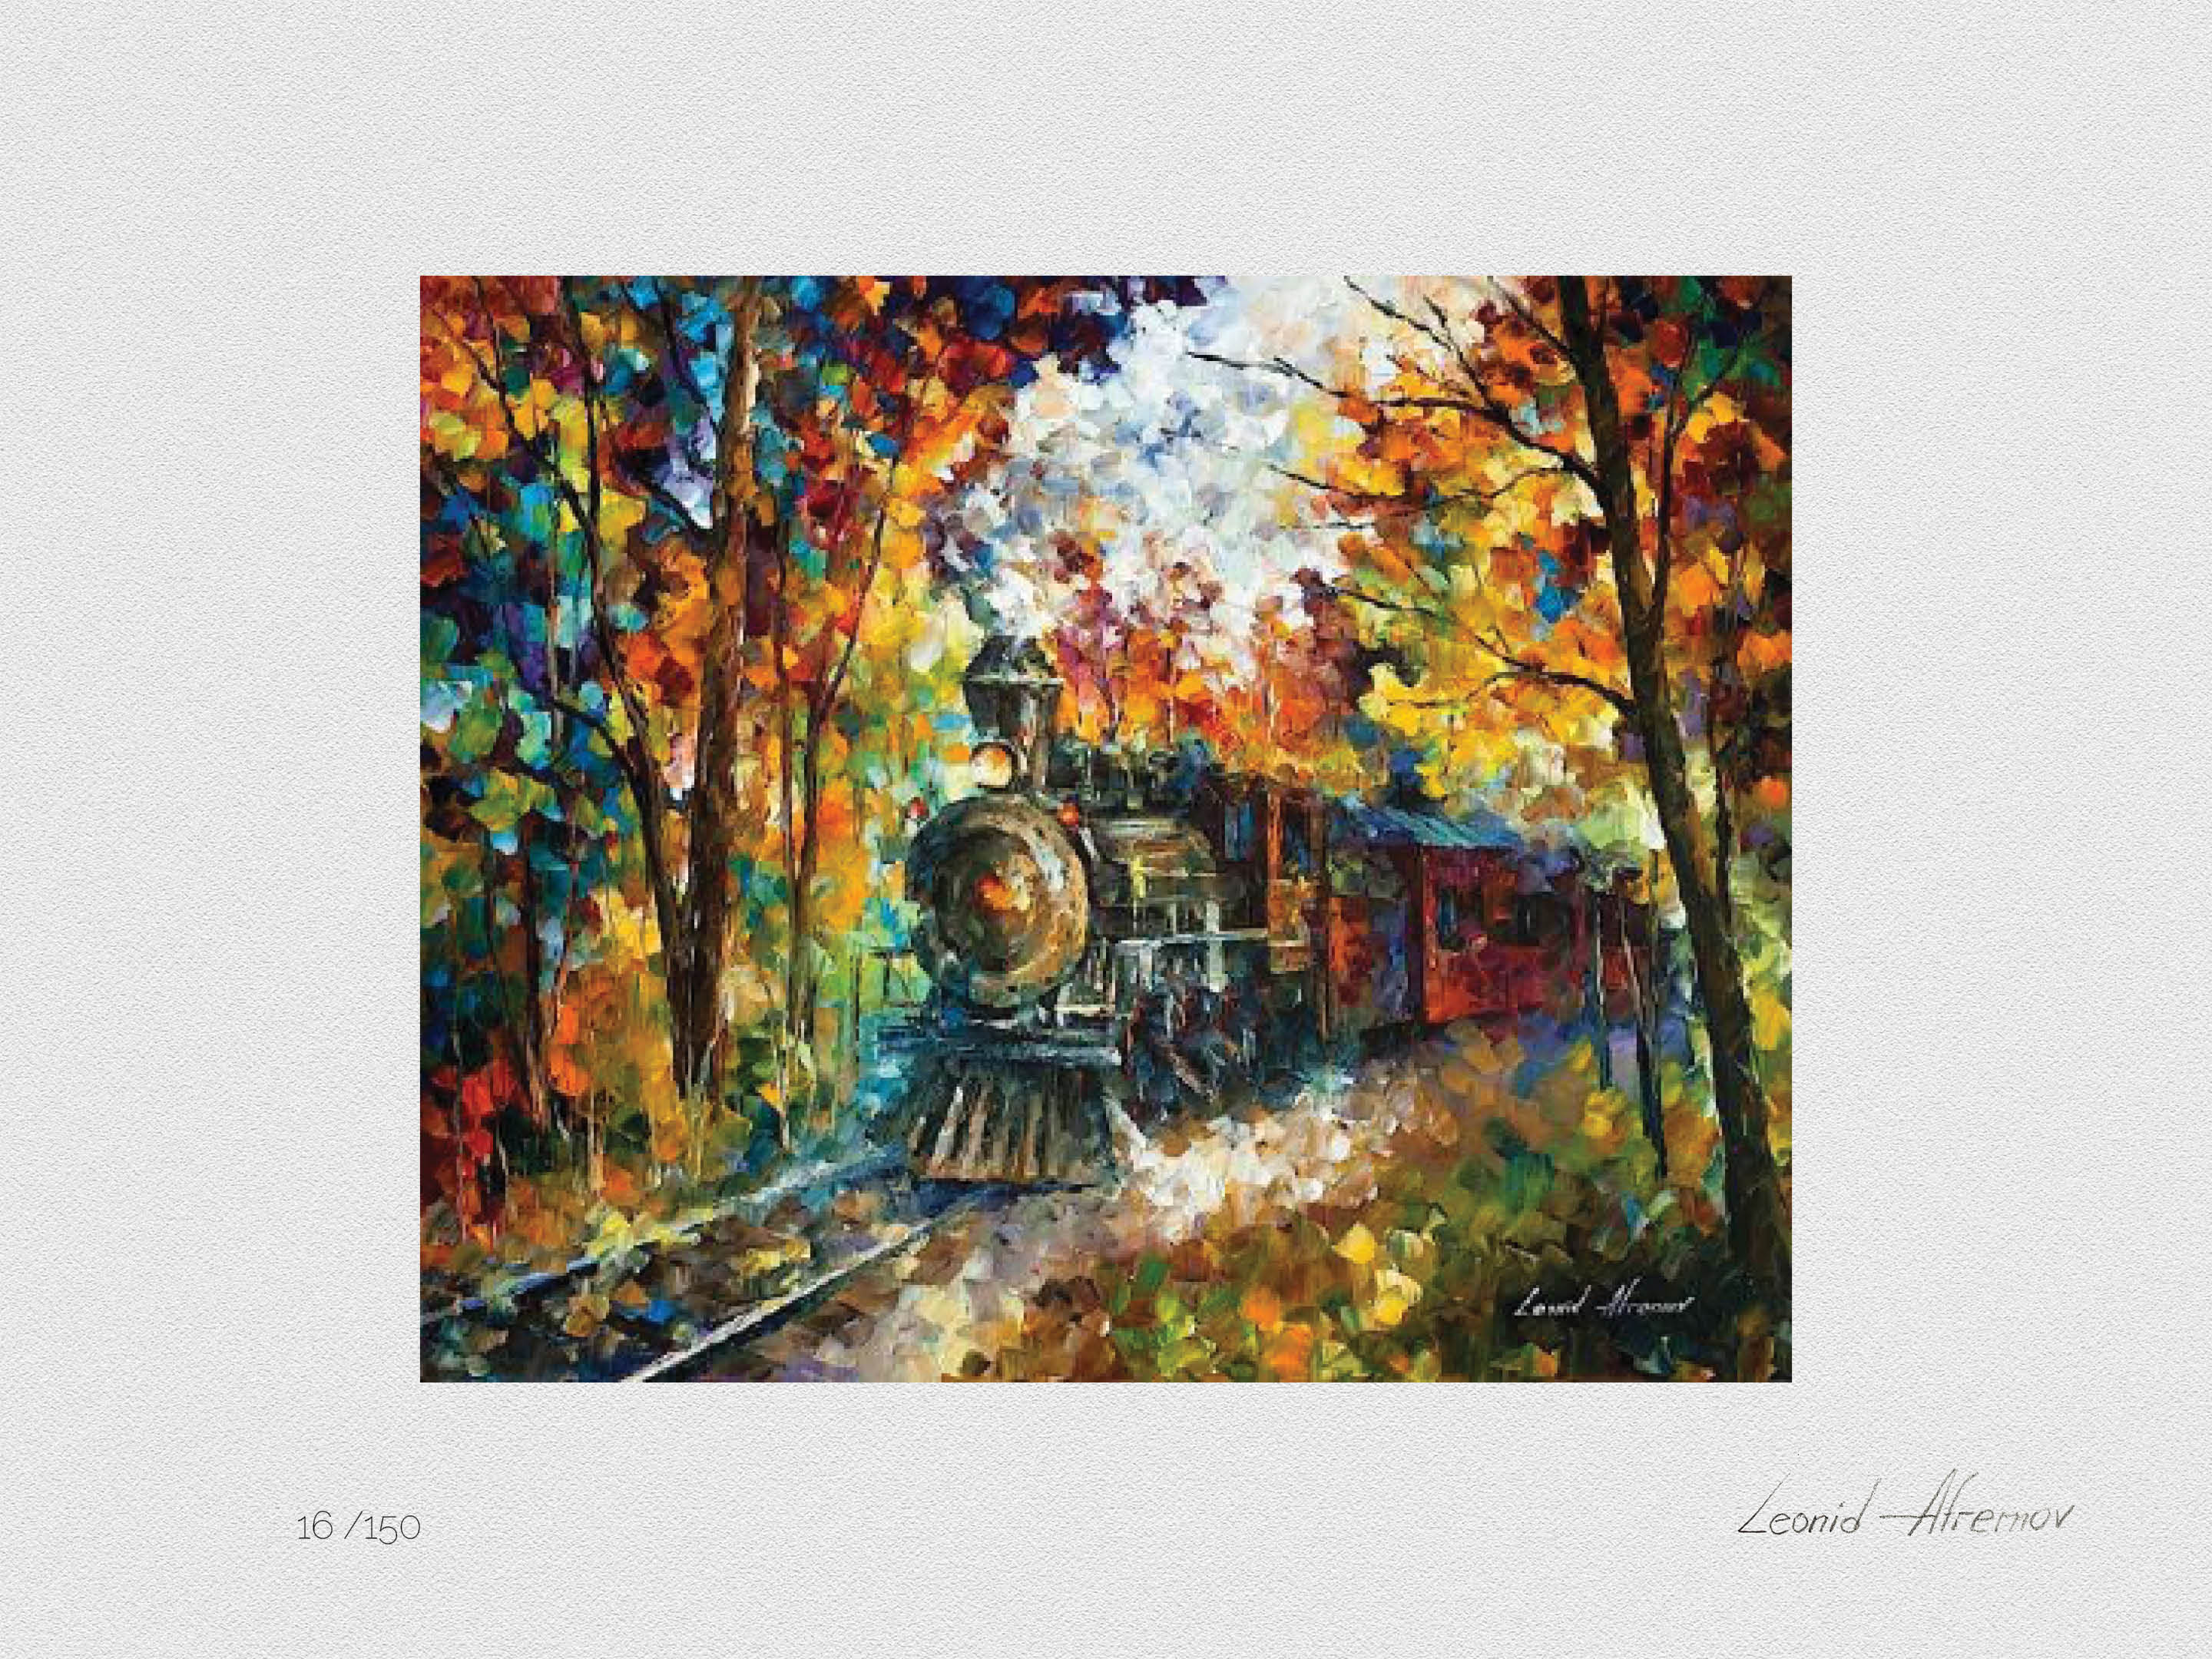 Set of 3 Lithography - Old Train, Orange Smoothness, Rain's Rustle In The Park